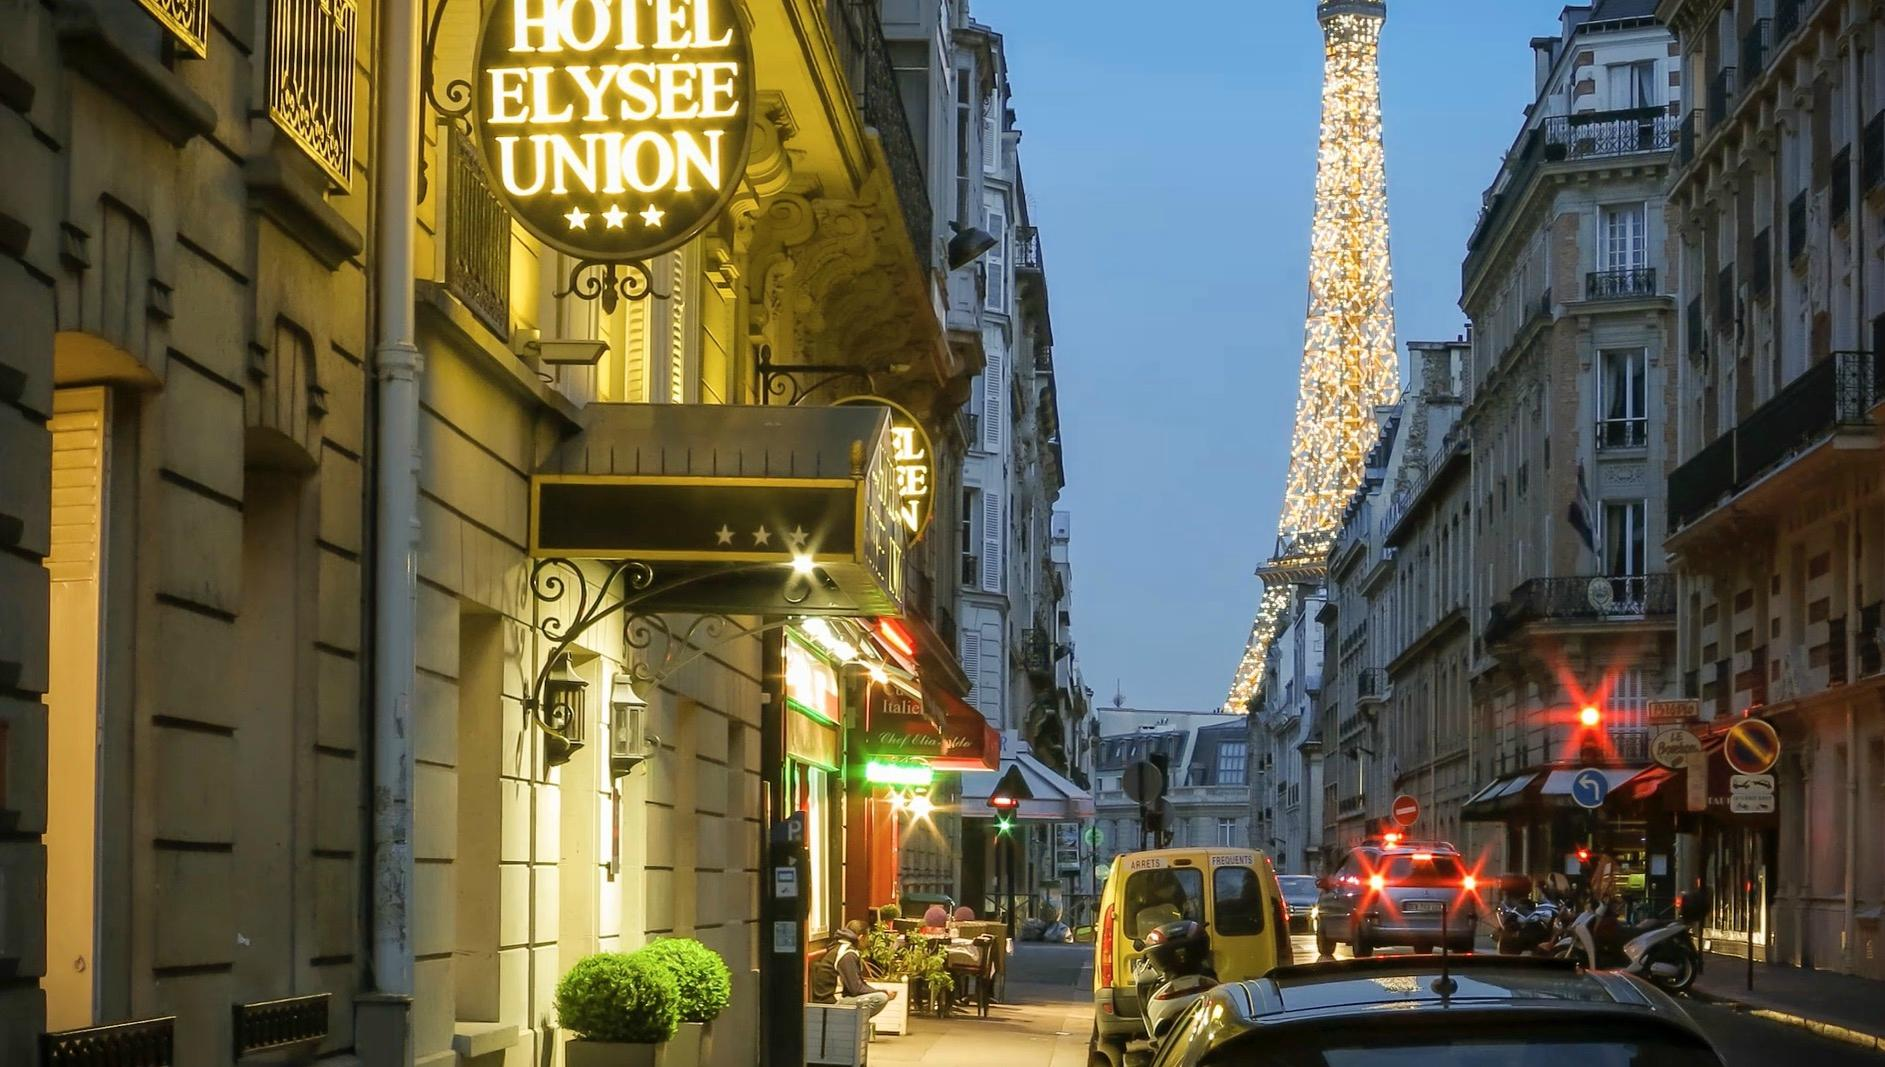 Hotel Elysees Union